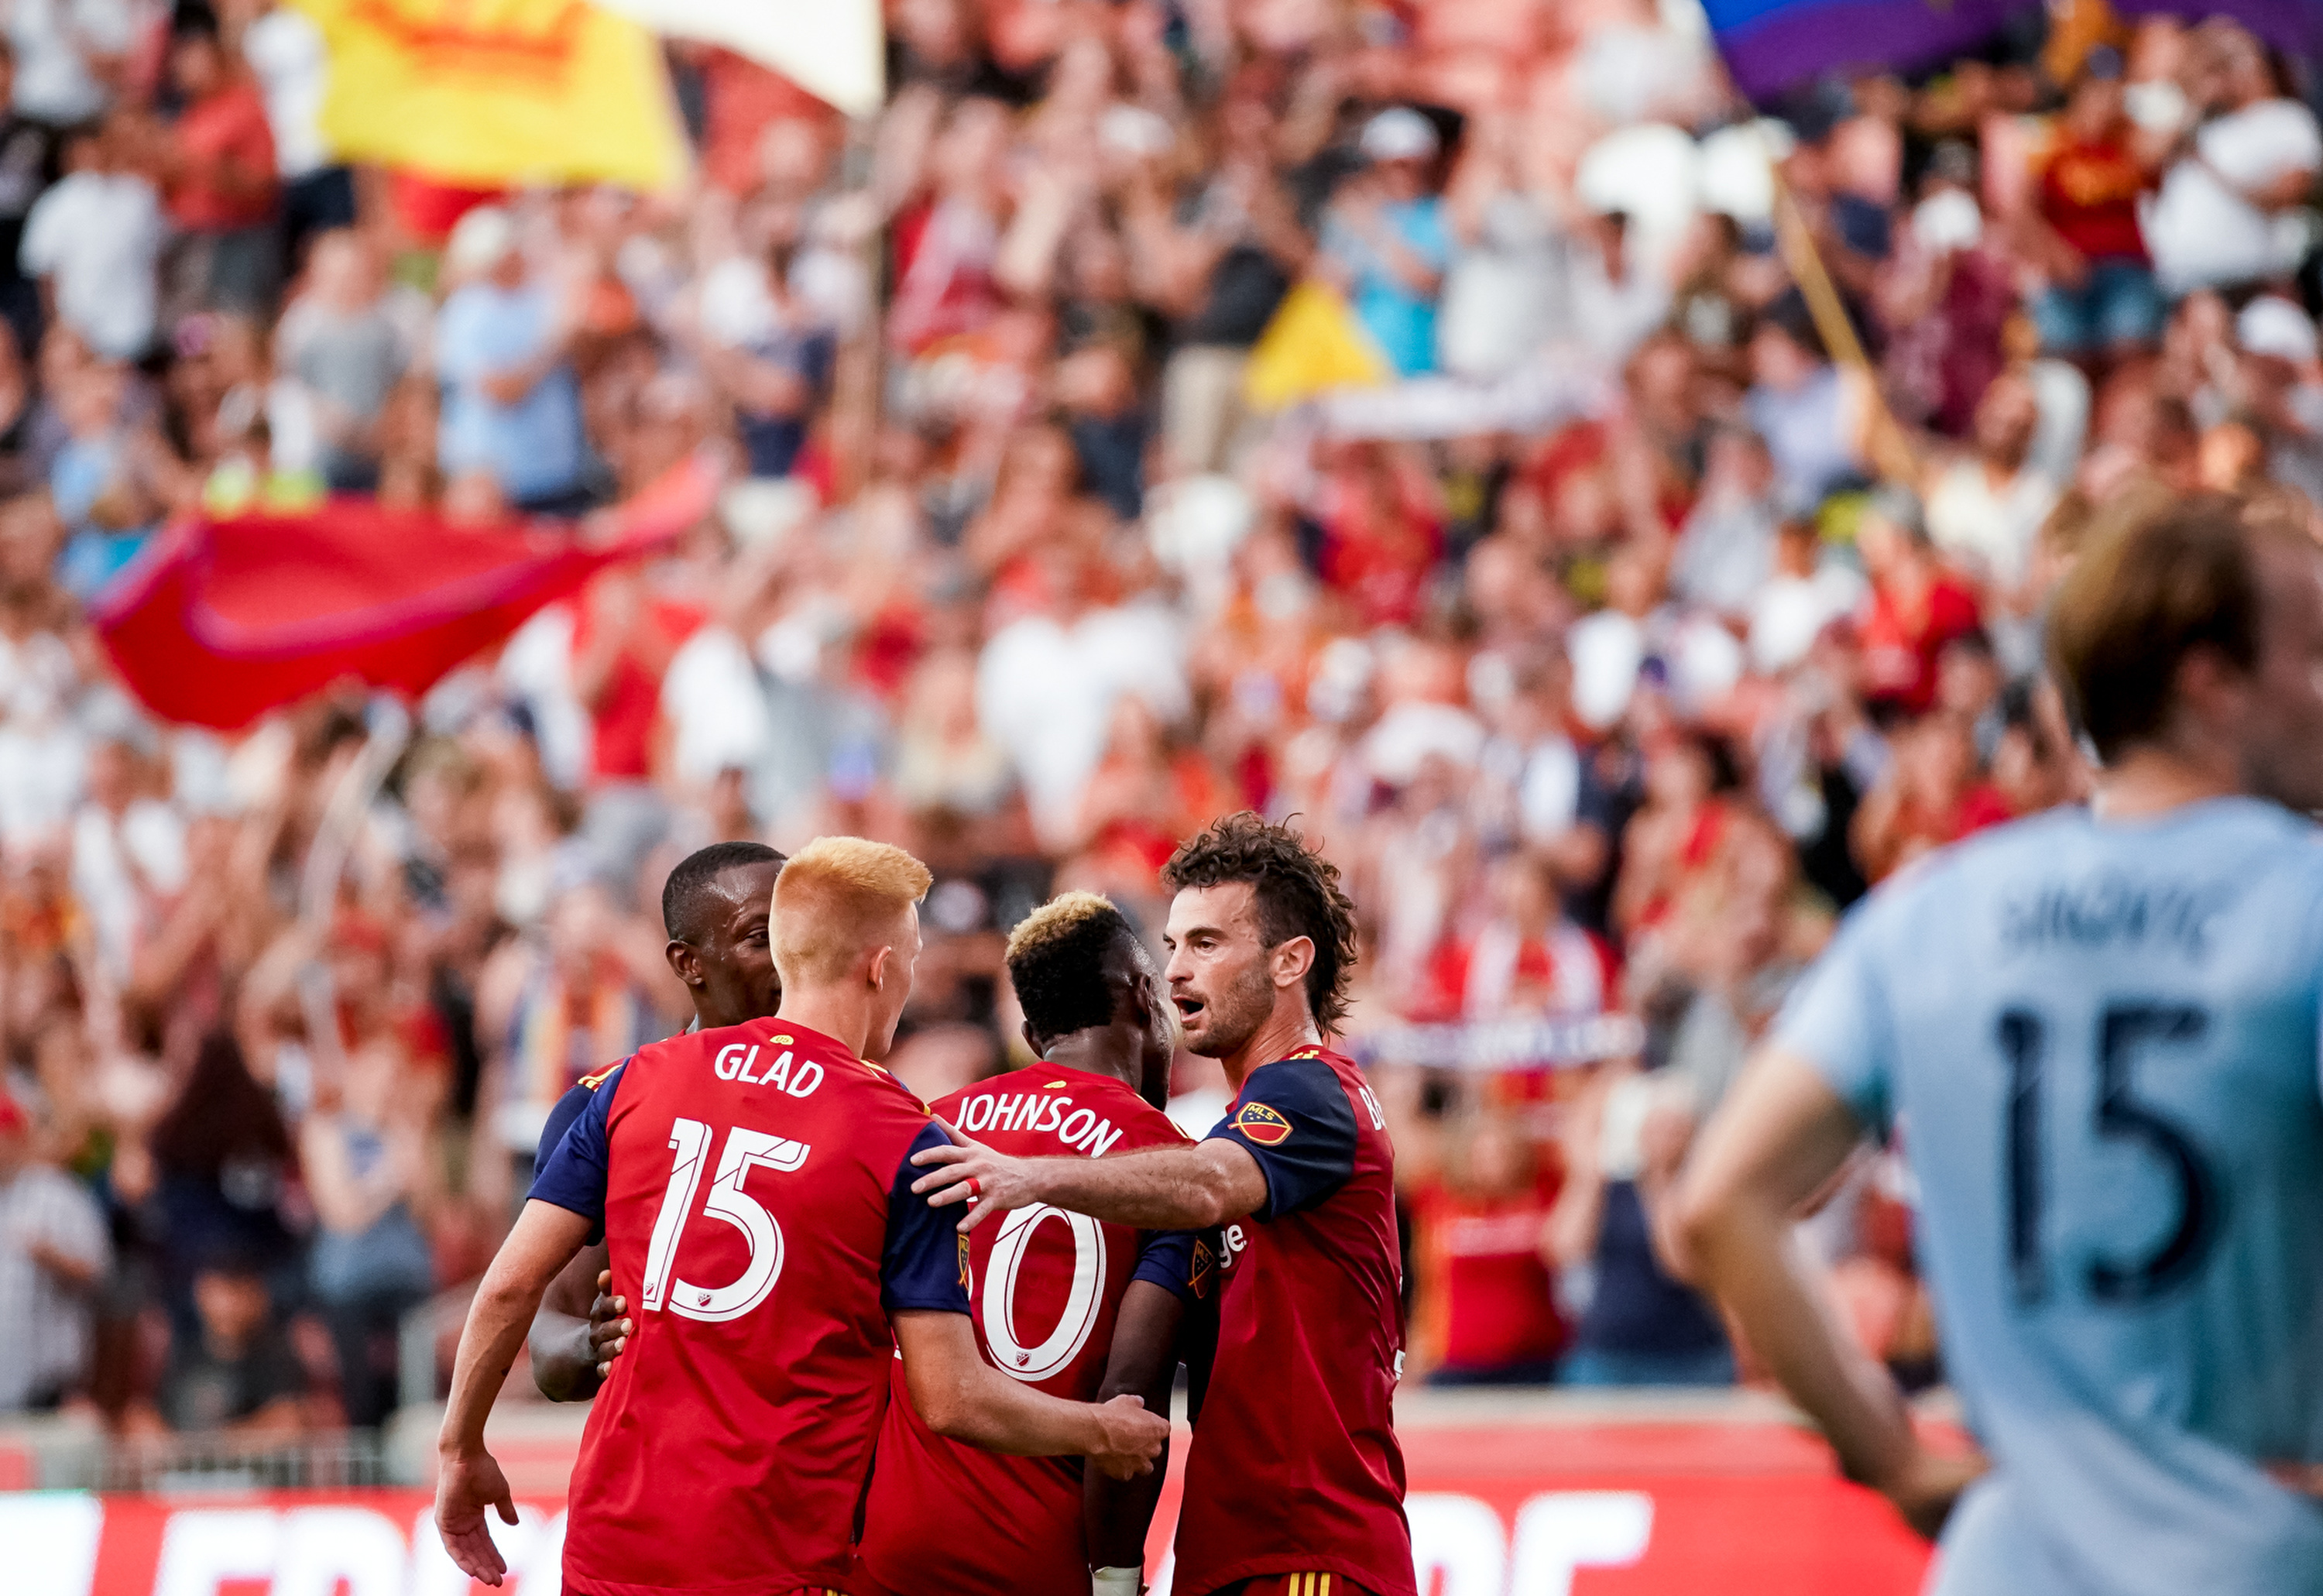 Real Salt Lake defender Nedum Onuoha (14), defender Justen Glad (15), forward Sam Johnson (50) and midfielder Kyle Beckerman (5) celebrate after Johnson scored on Sporting Kansas City at Rio Tinto Stadium in Sandy on Saturday, June 29, 2019.